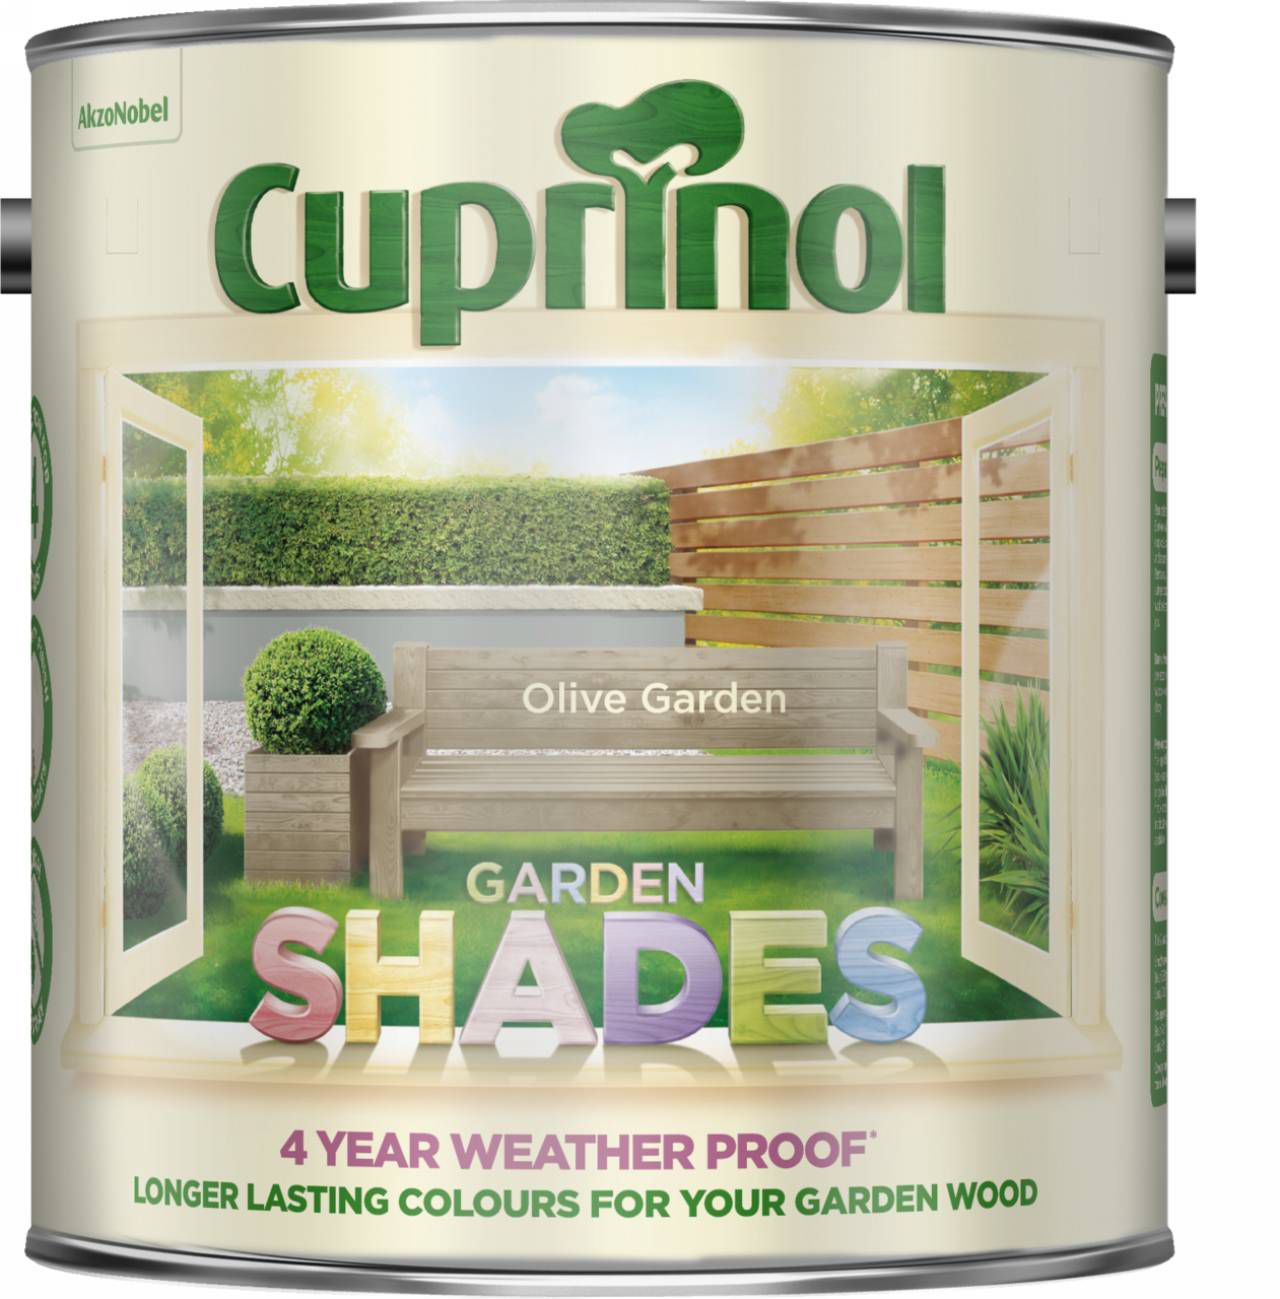 Cuprinol Anti-Slip Decking Stain is a slip resistant treatment for softwood & hardwood decking. Contains anti-slip microbeads. Long lasting protection.